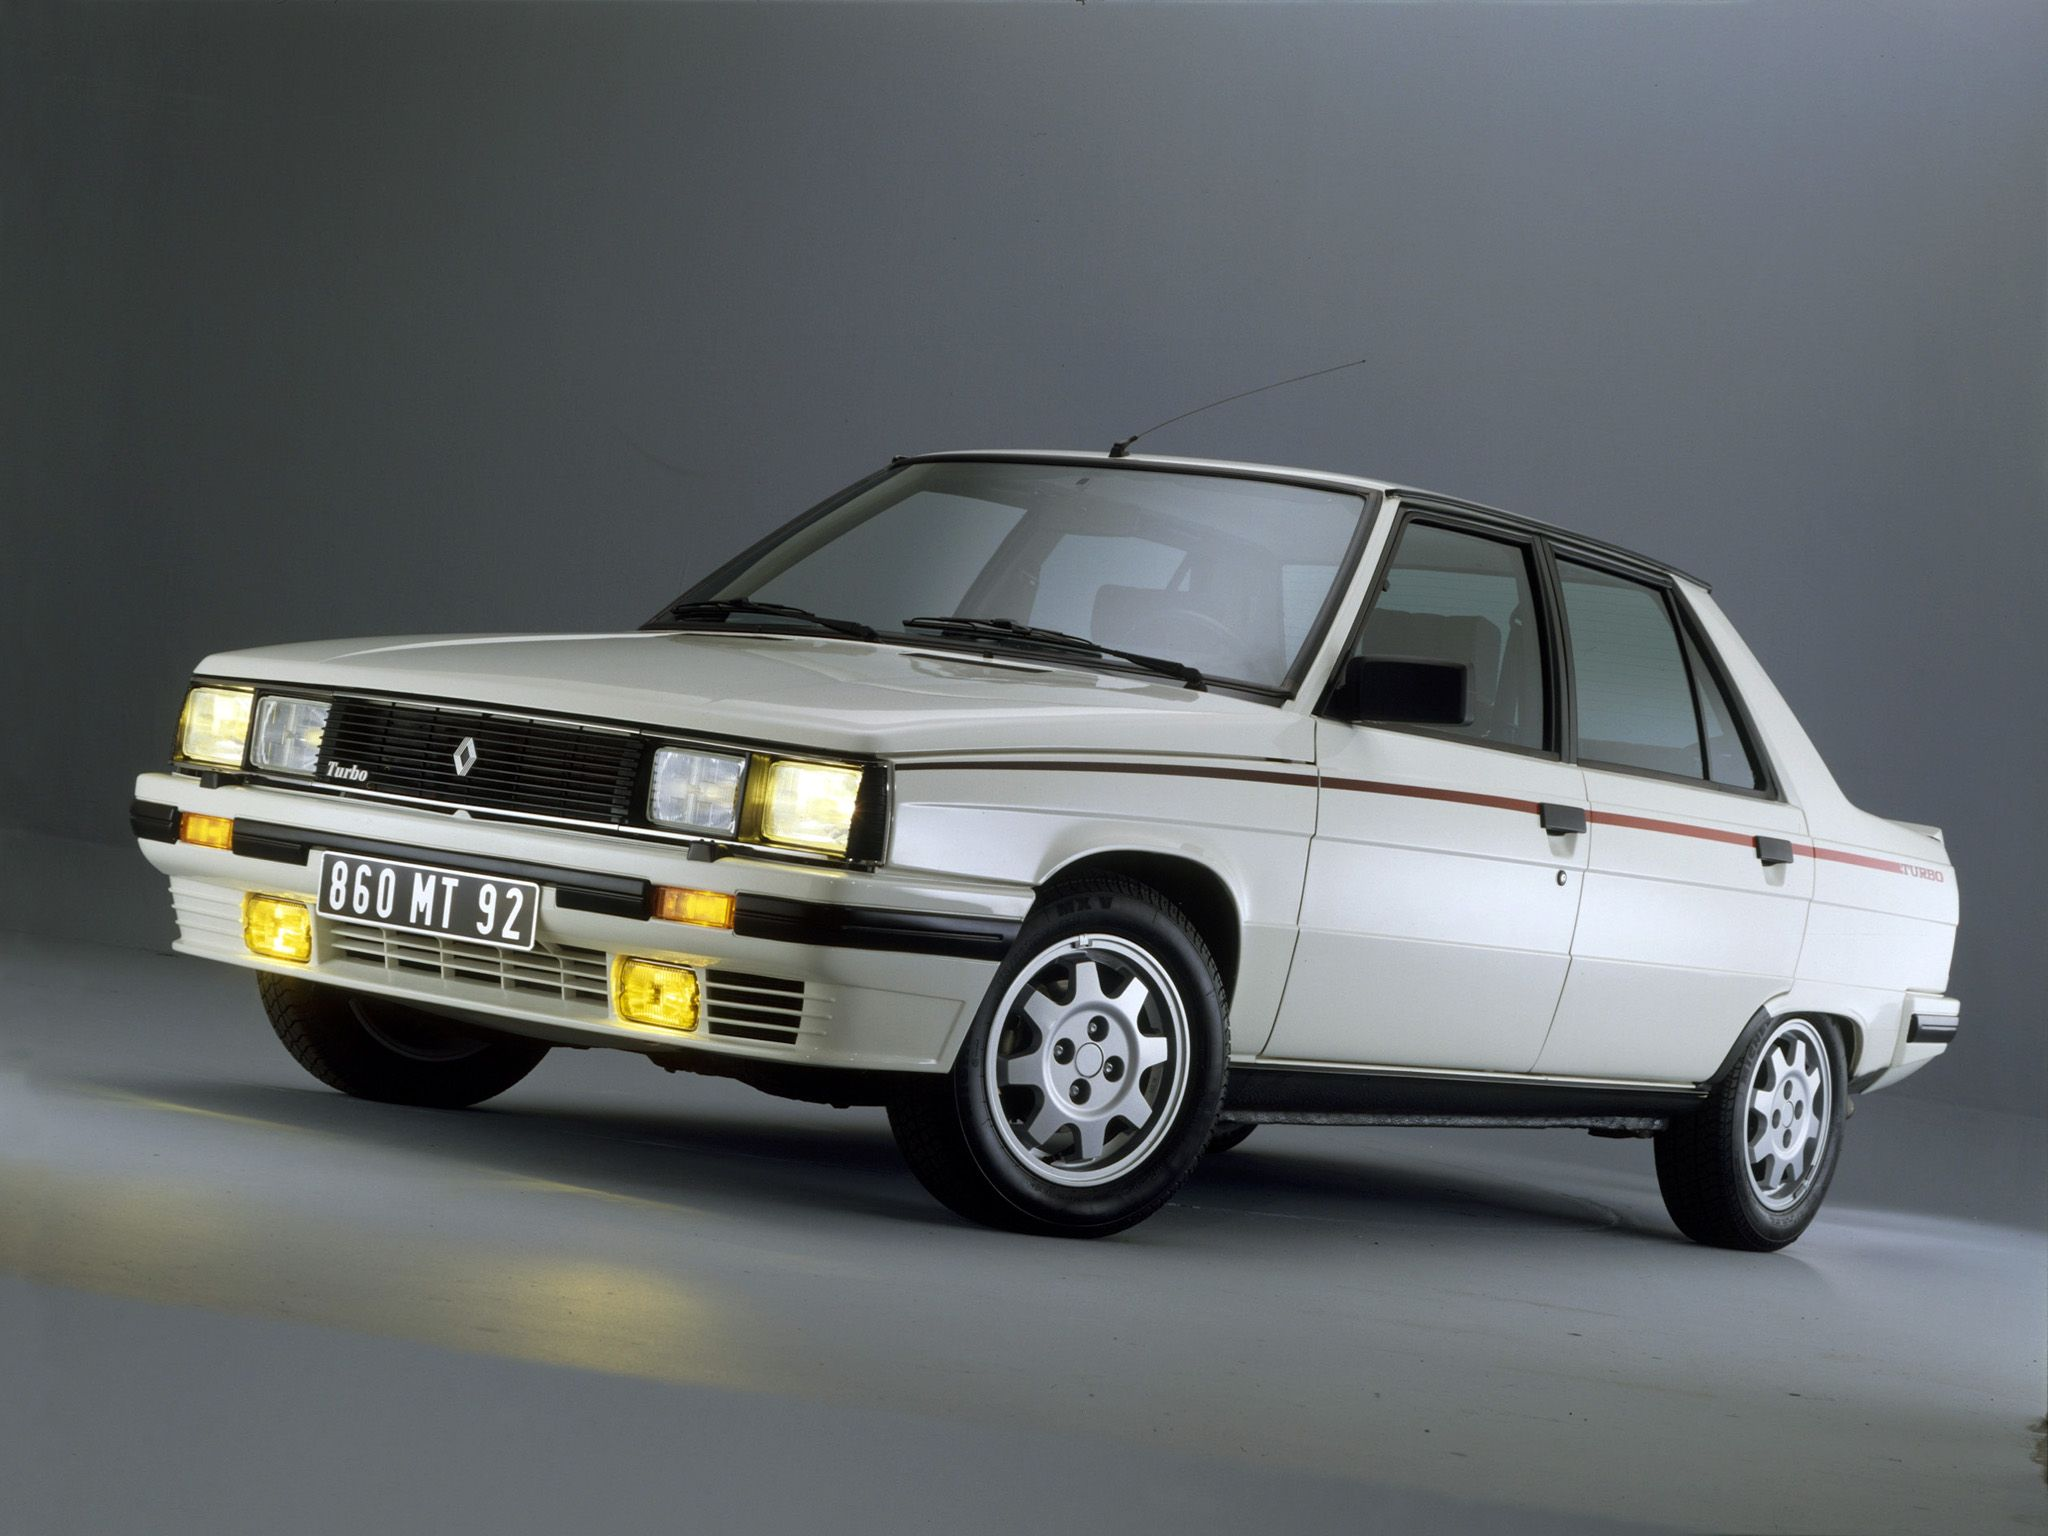 renault 9 turbo carsmotorcyclesbycicle renault 9 cars classic cars